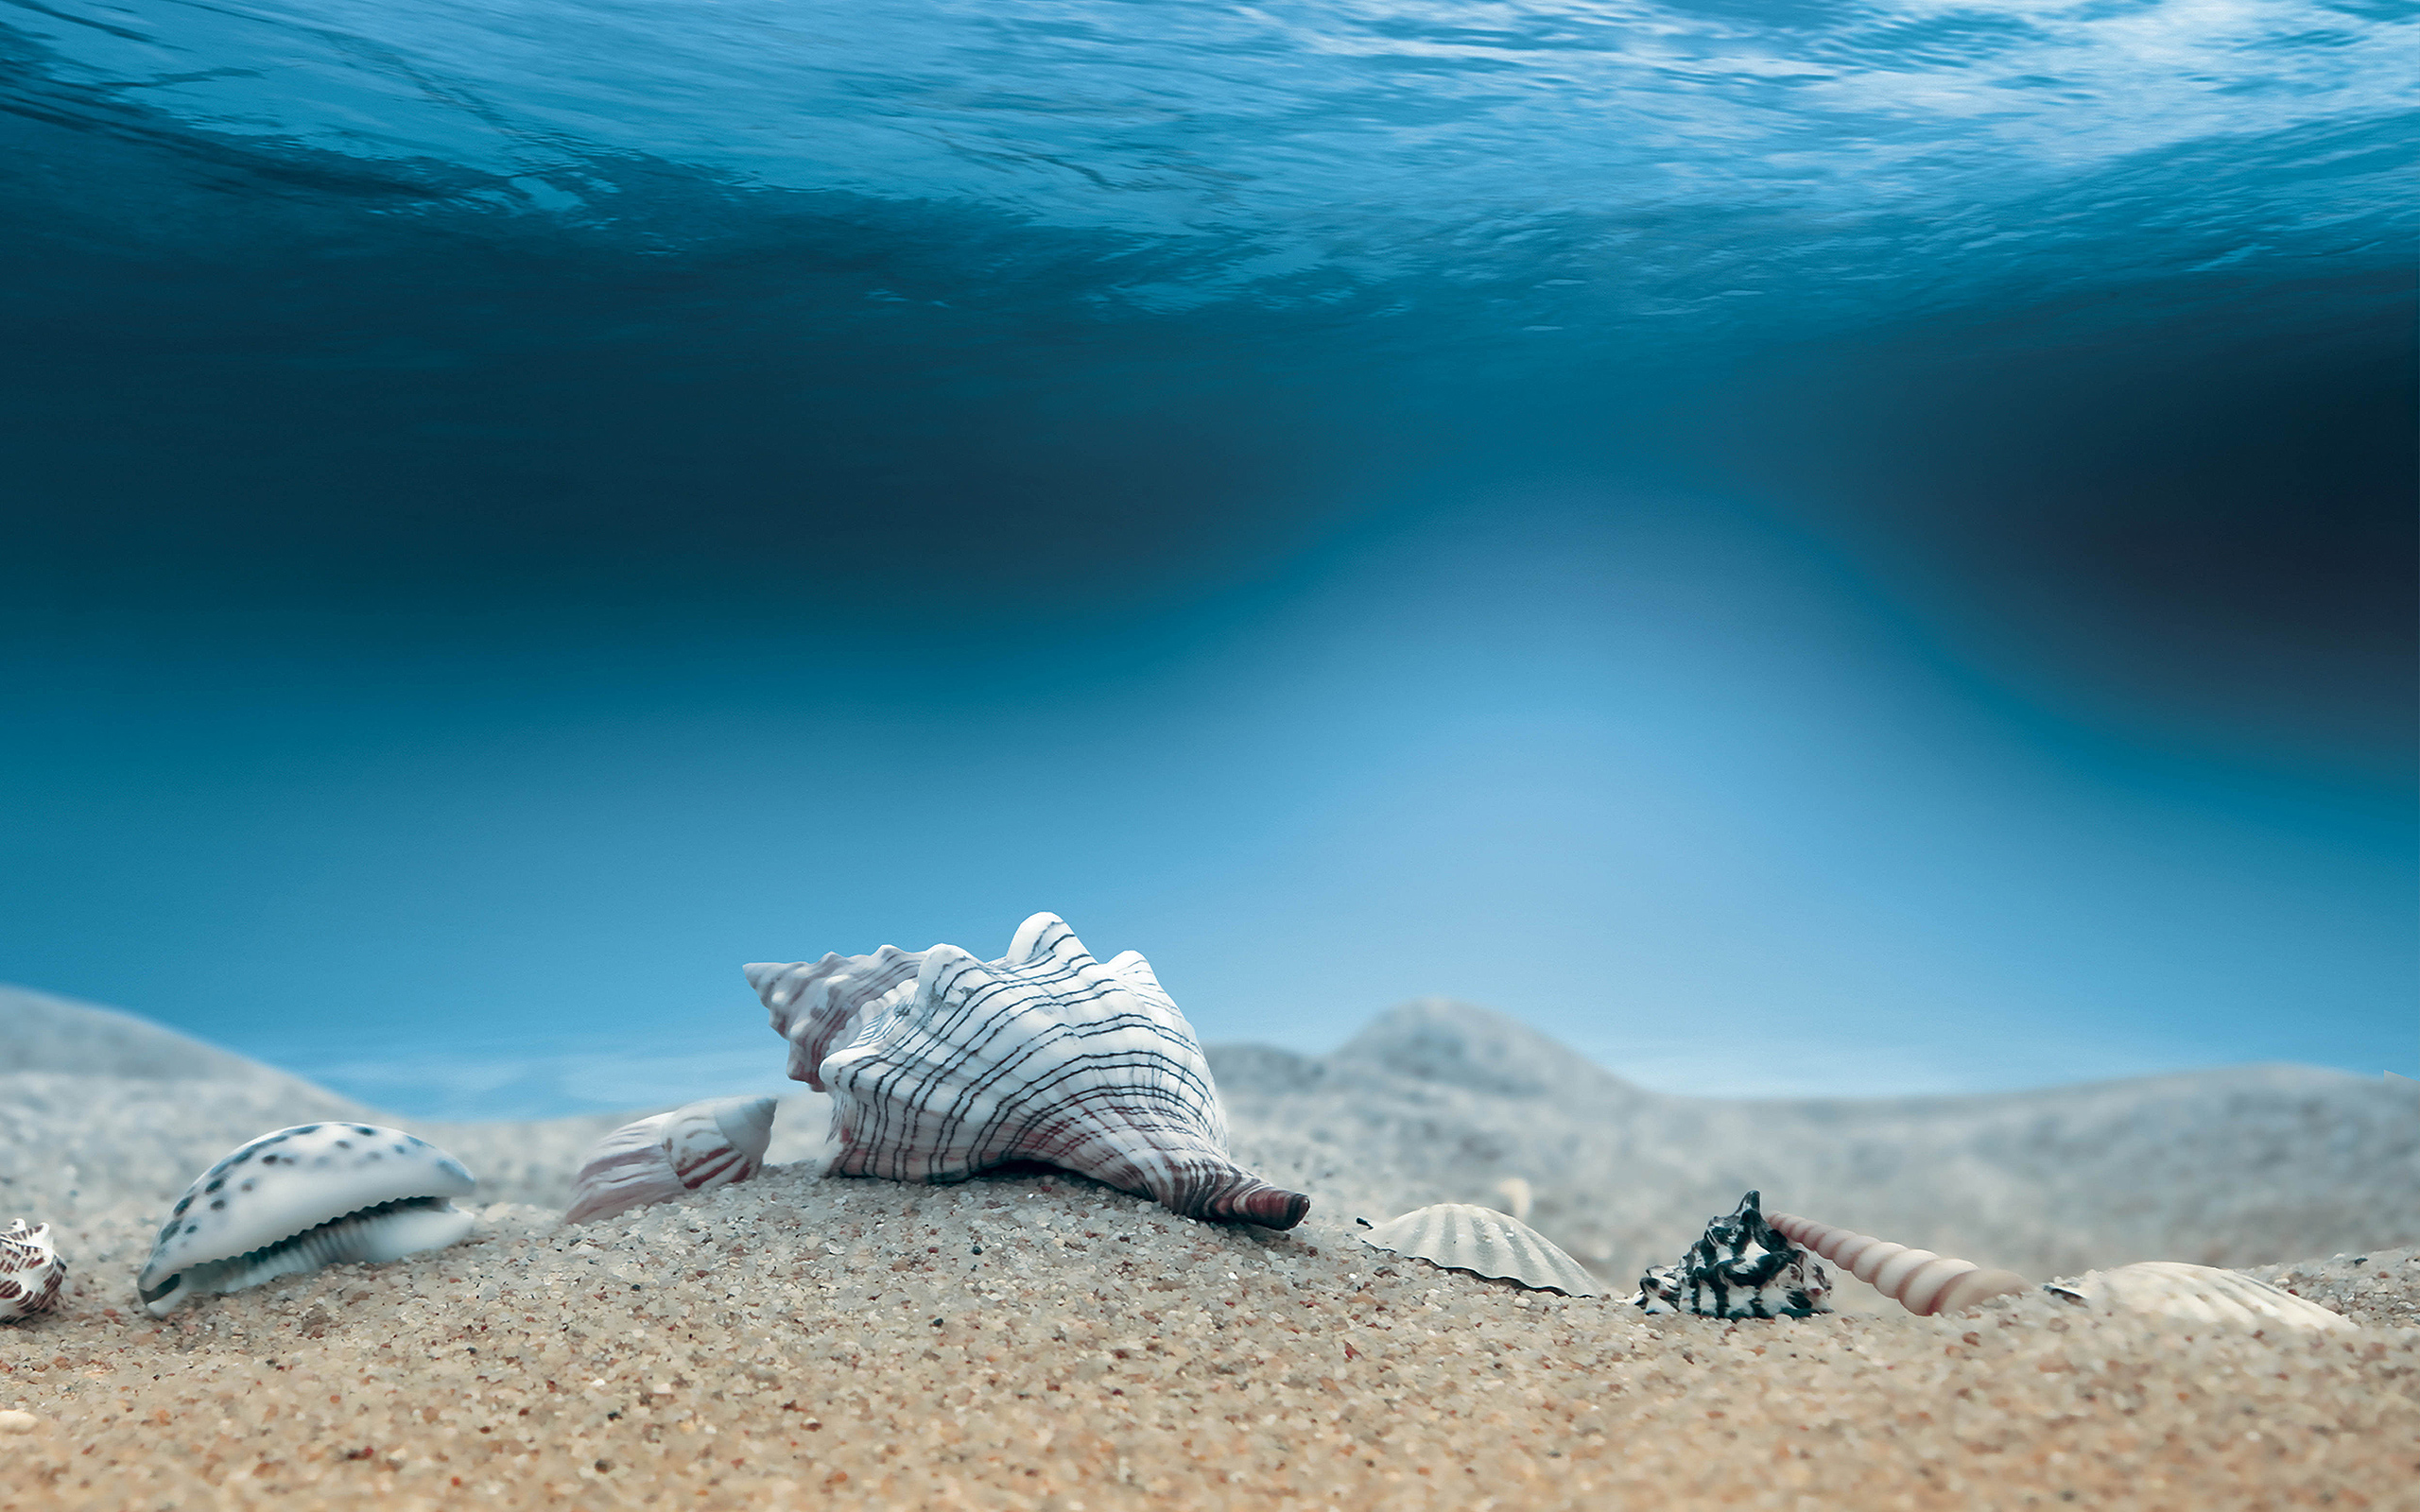 shells seabed wallpaper